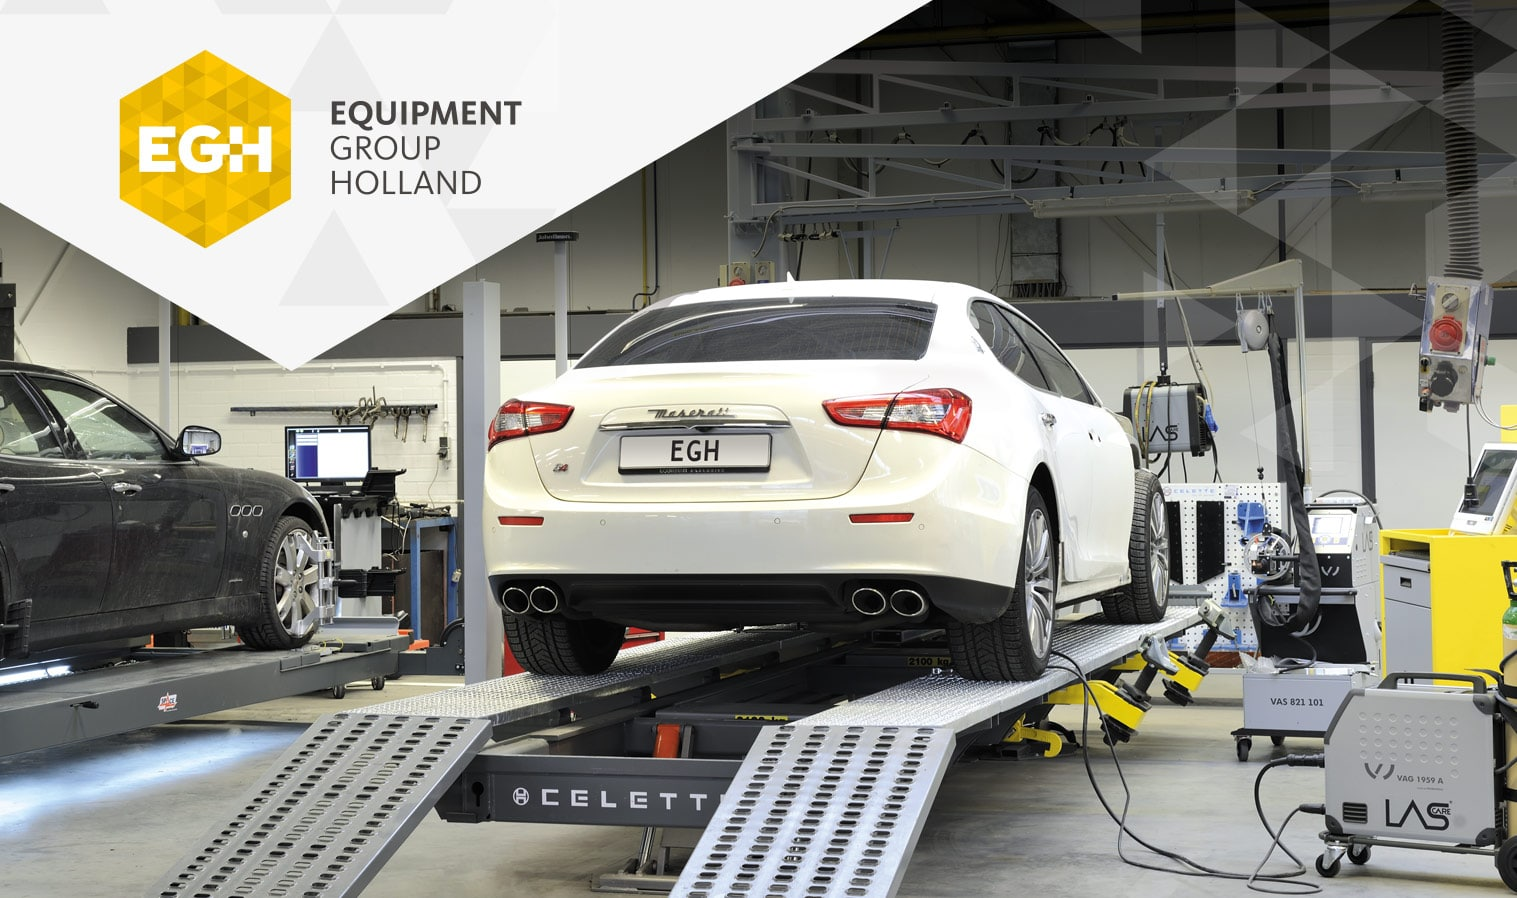 EGH – Equipment Group Holland (Lascare)